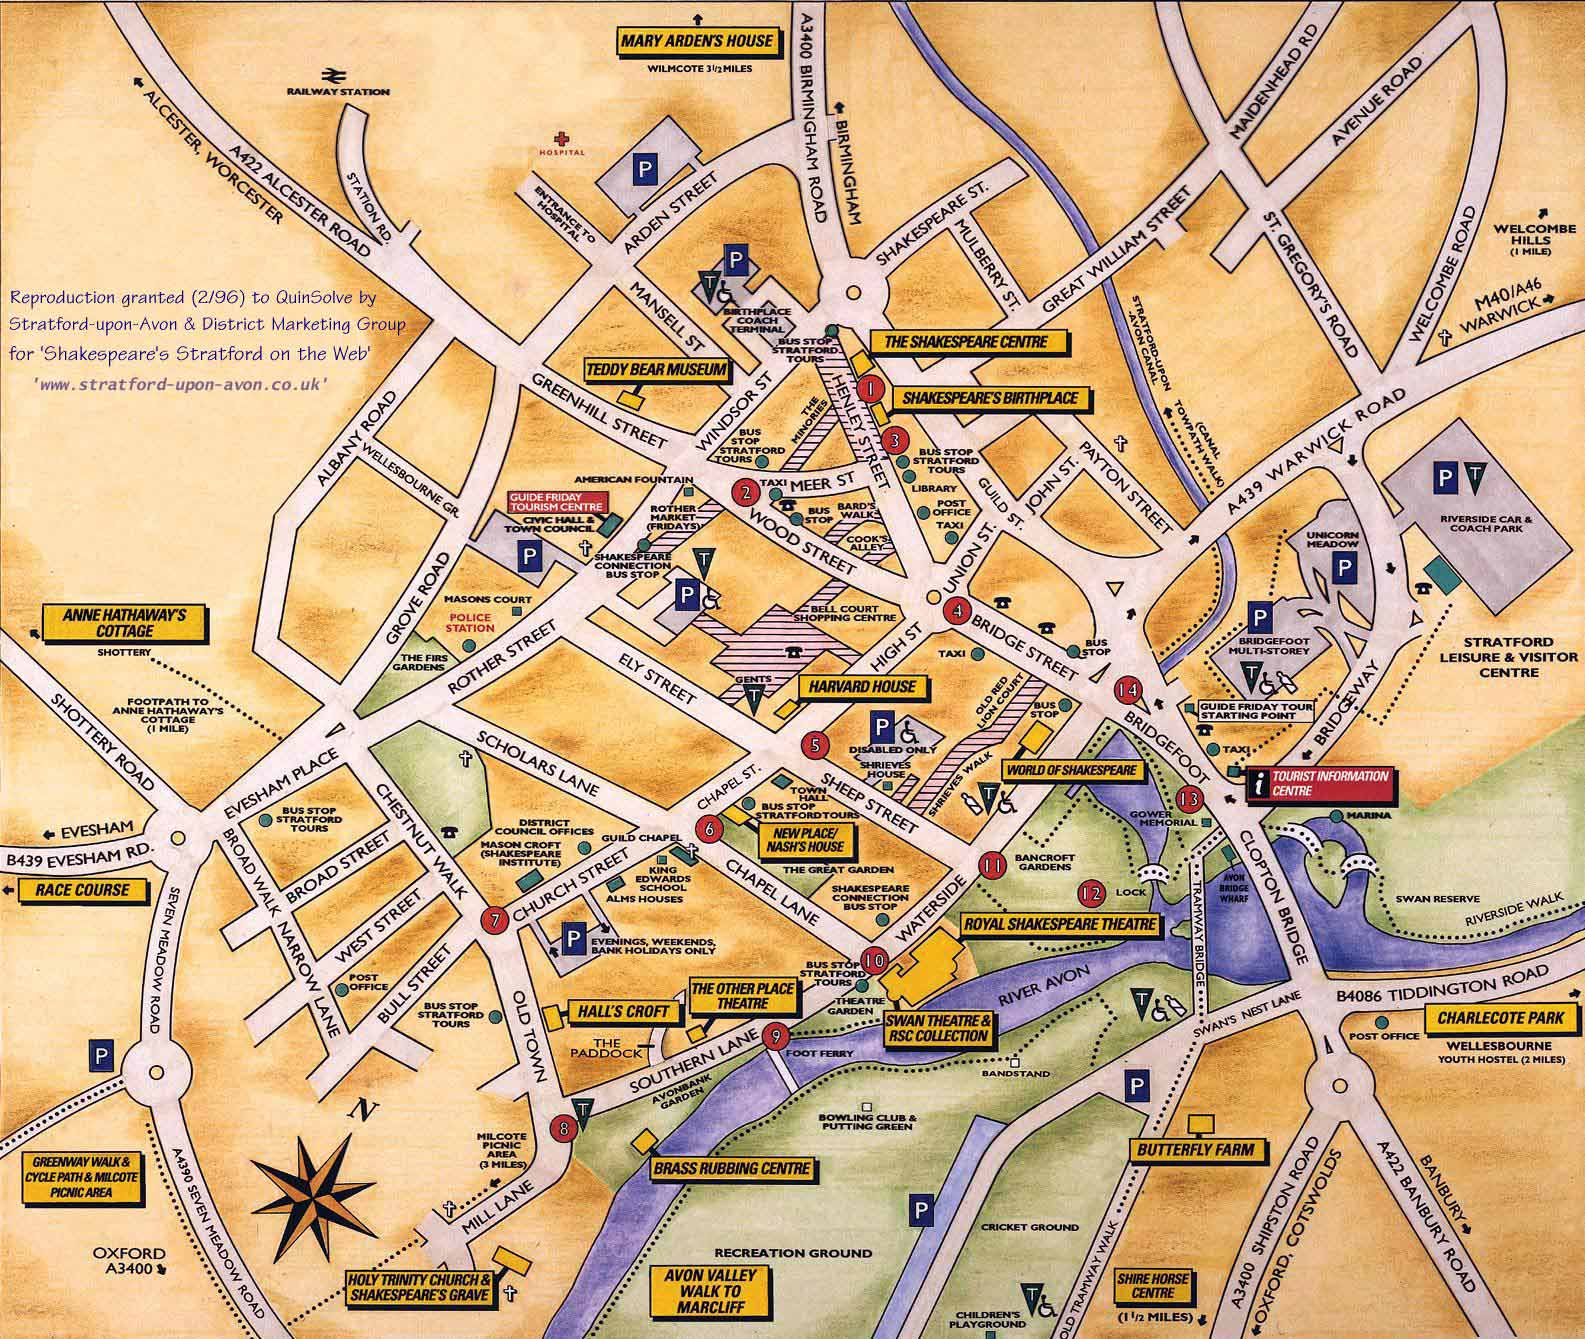 StratforduponAvon Detailed Street Map – United Kingdom Tourist Attractions Map